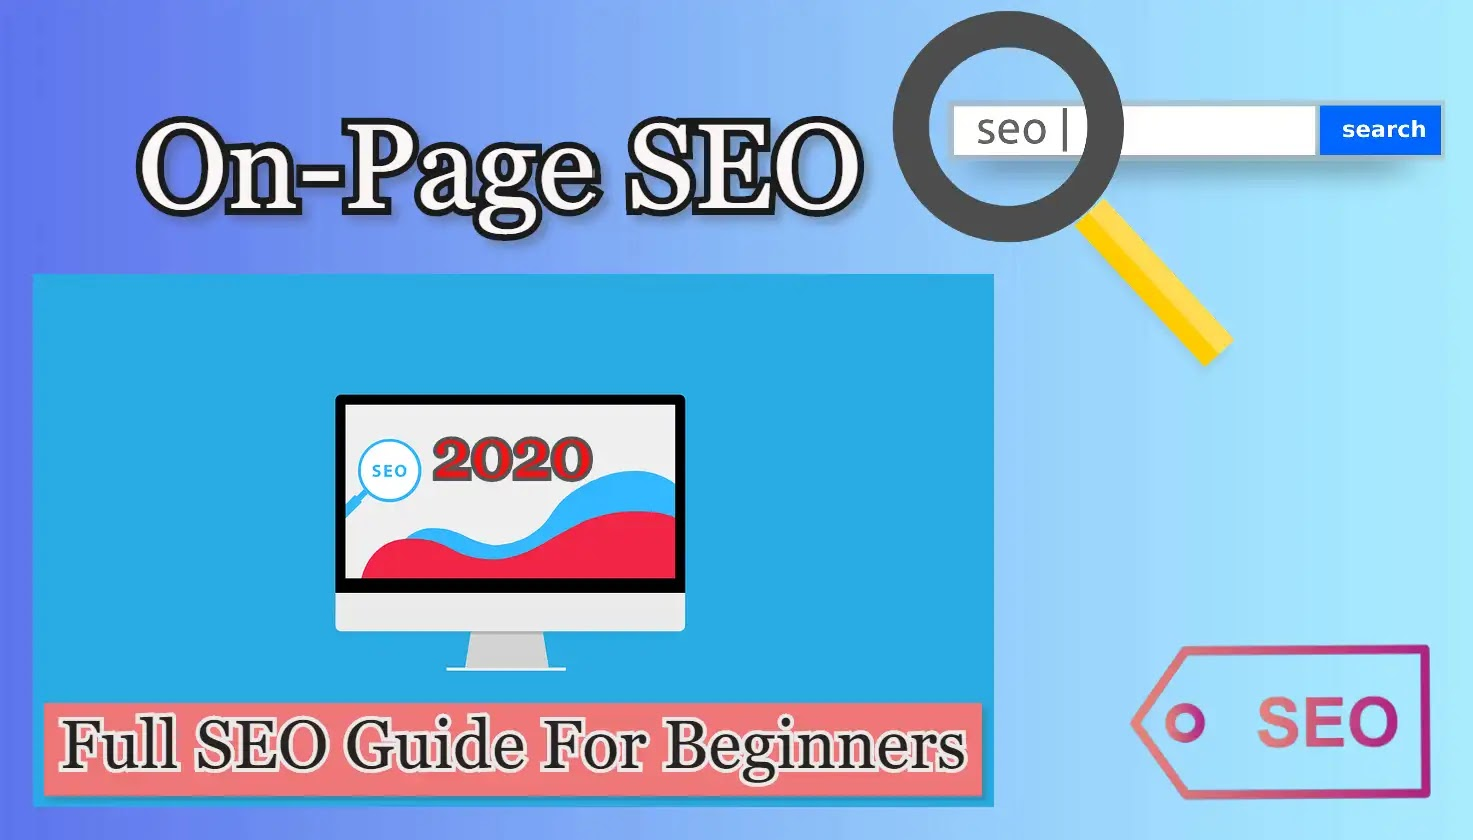 What is On-Page SEO - Full SEO Guide For beginners [2020]